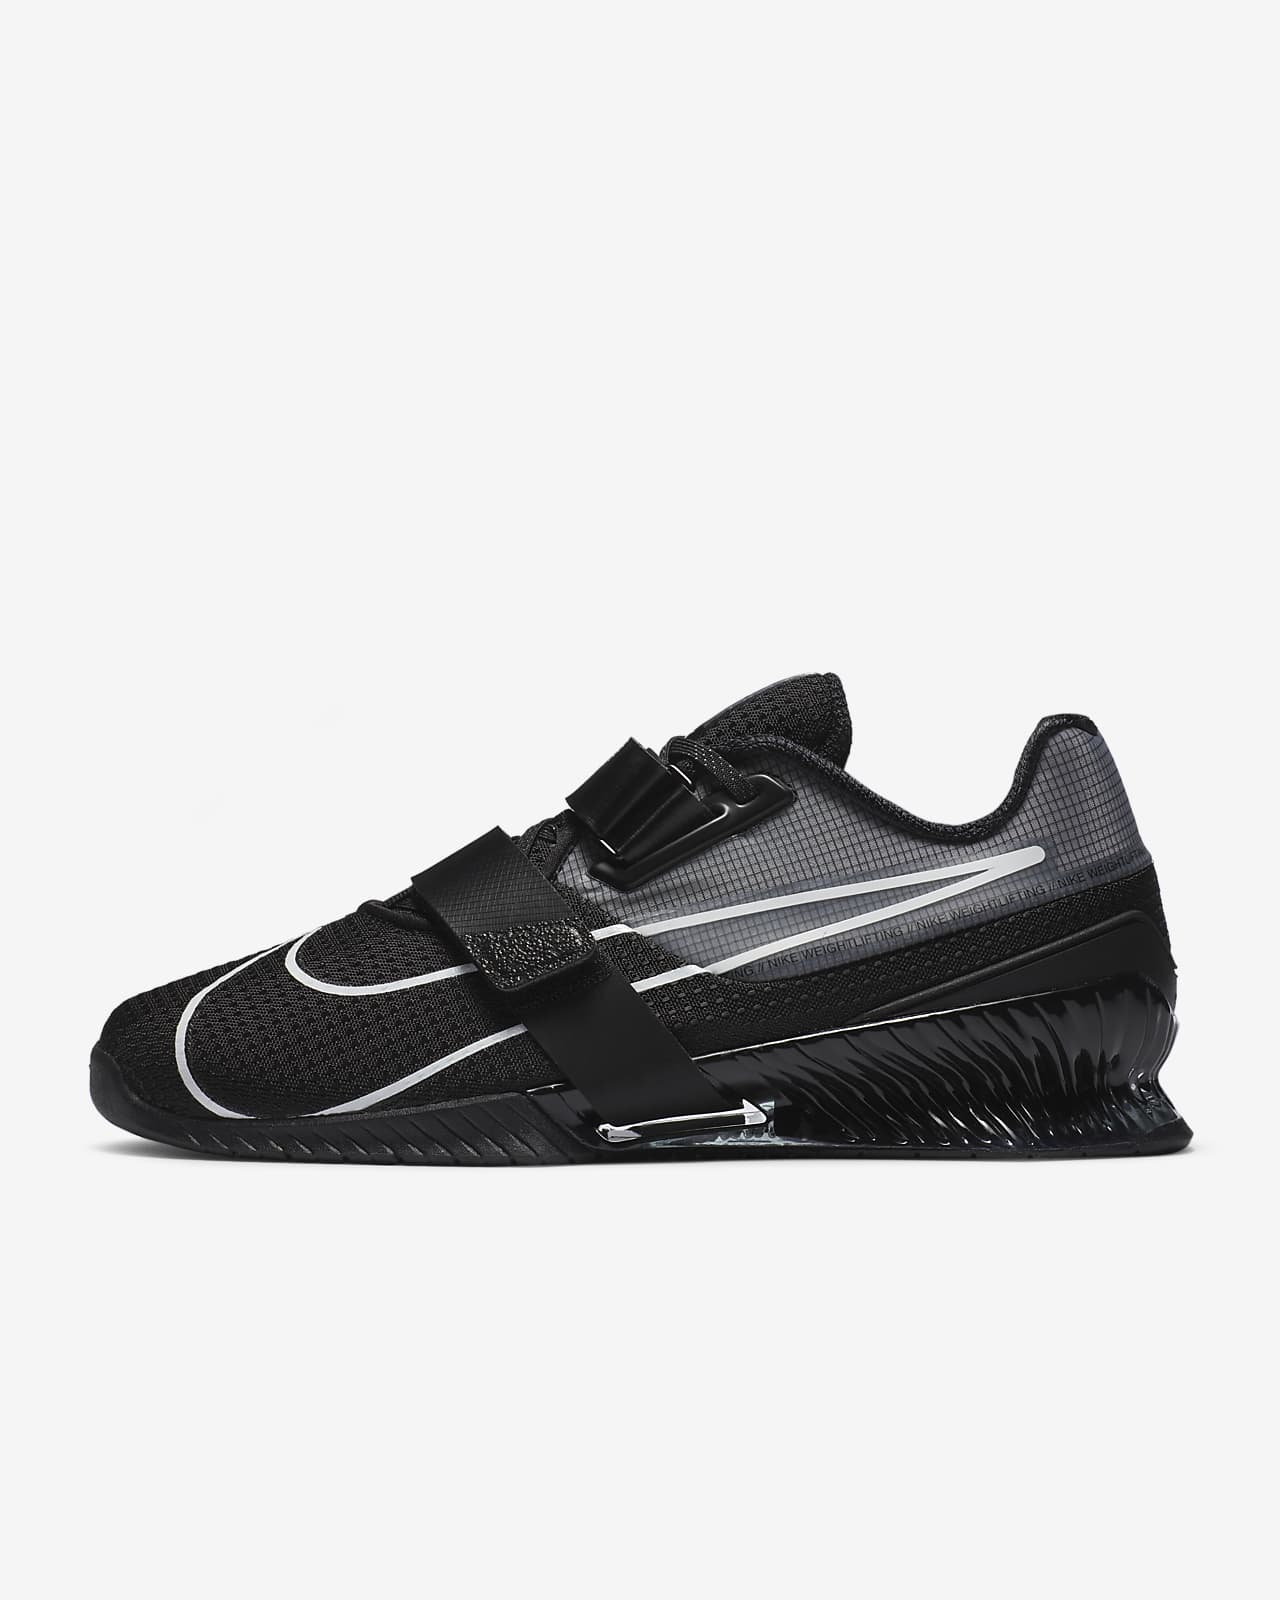 Nike Romaleos 4 Training Shoe